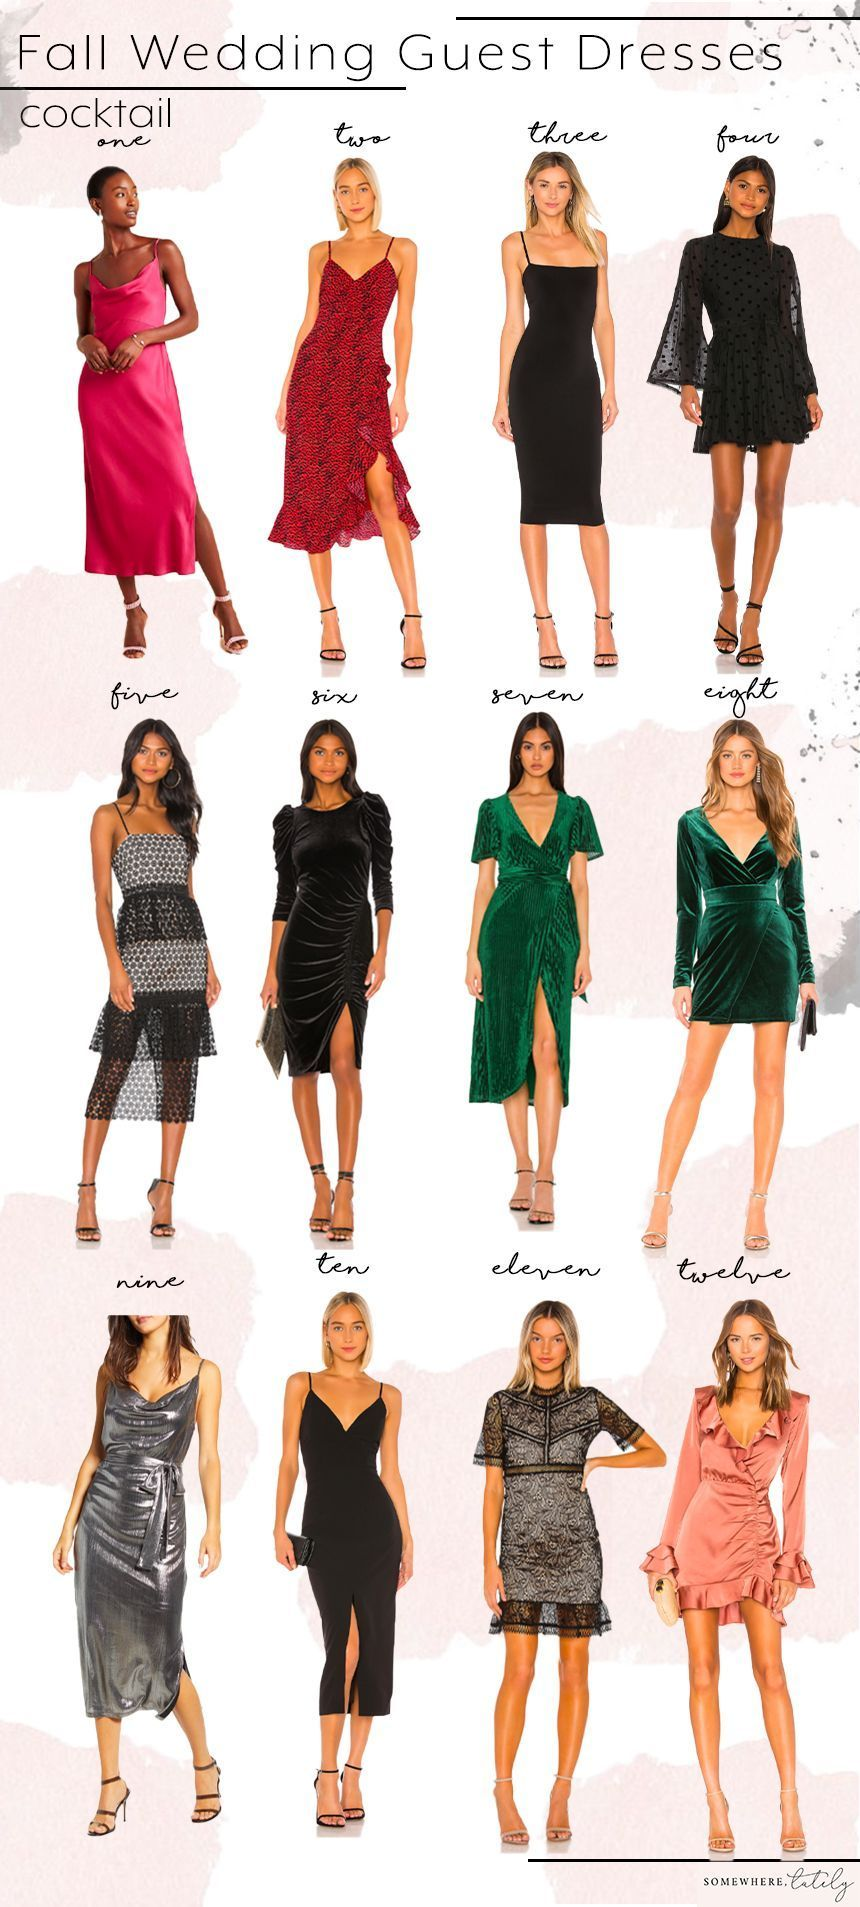 Fall Wedding Guest Dress Roundup Wedding Guest Outfit Fall What To Wear To A Fa In 2020 October Wedding Guest Dress Wedding Guest Outfit Fall Wedding Attire Guest